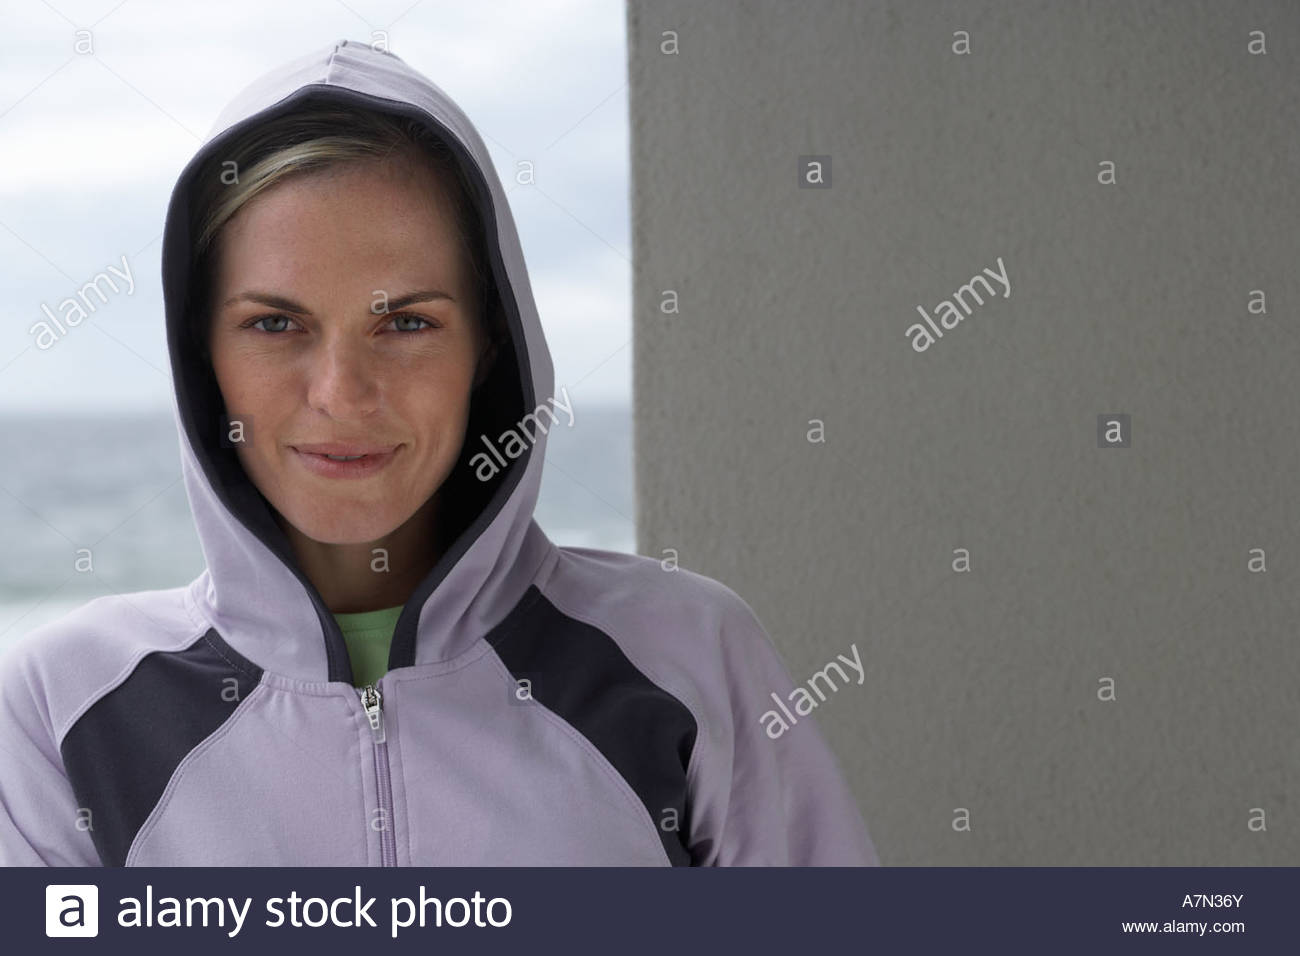 Woman wearing hooded top standing on balcony with ocean view smiling front view portrait - Stock Image